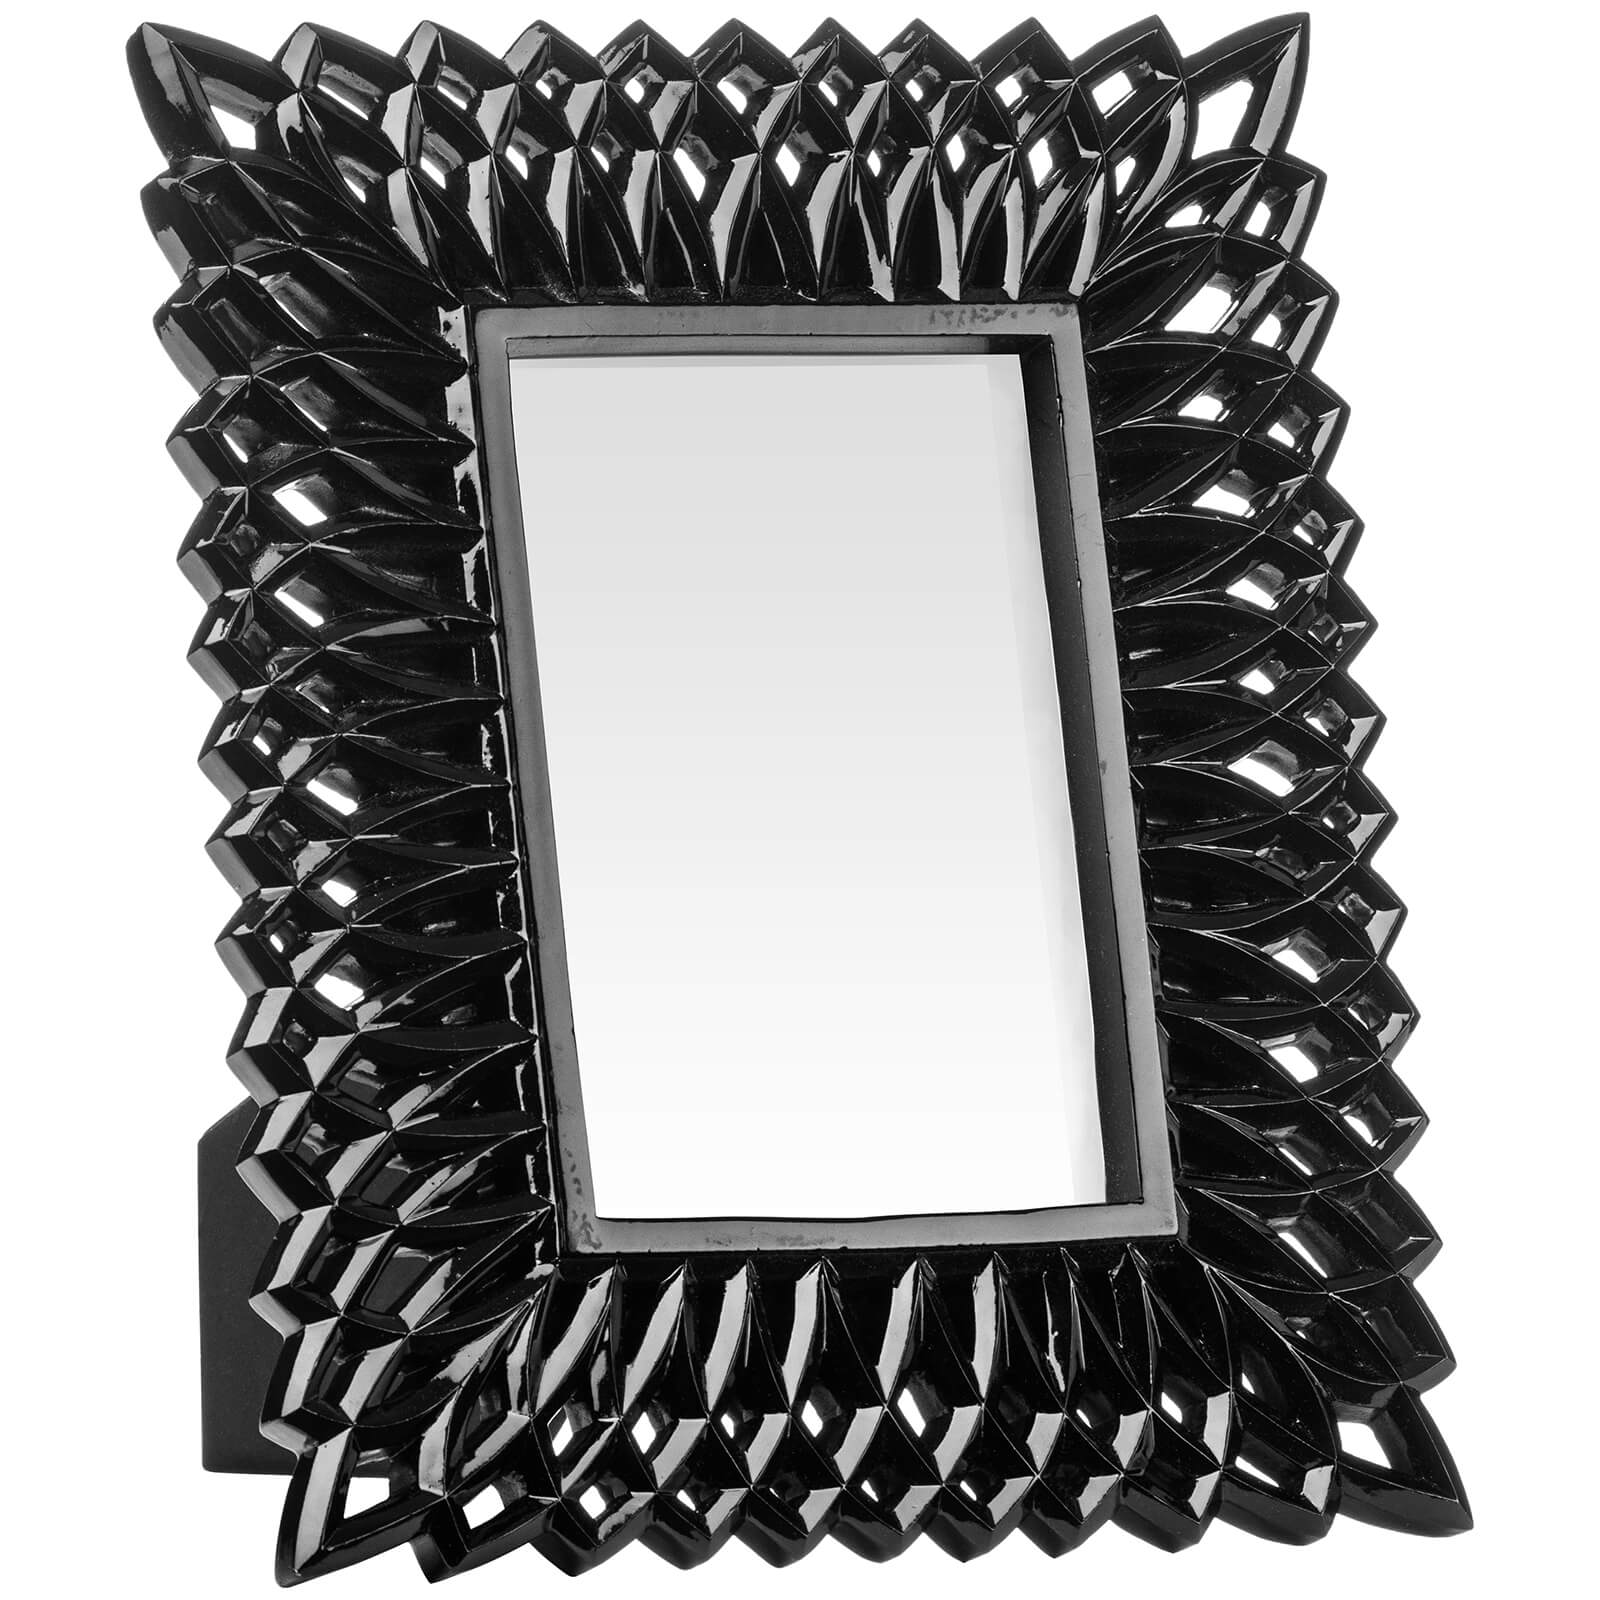 Swirl Photo Frame 4 x 6 - Black High Gloss